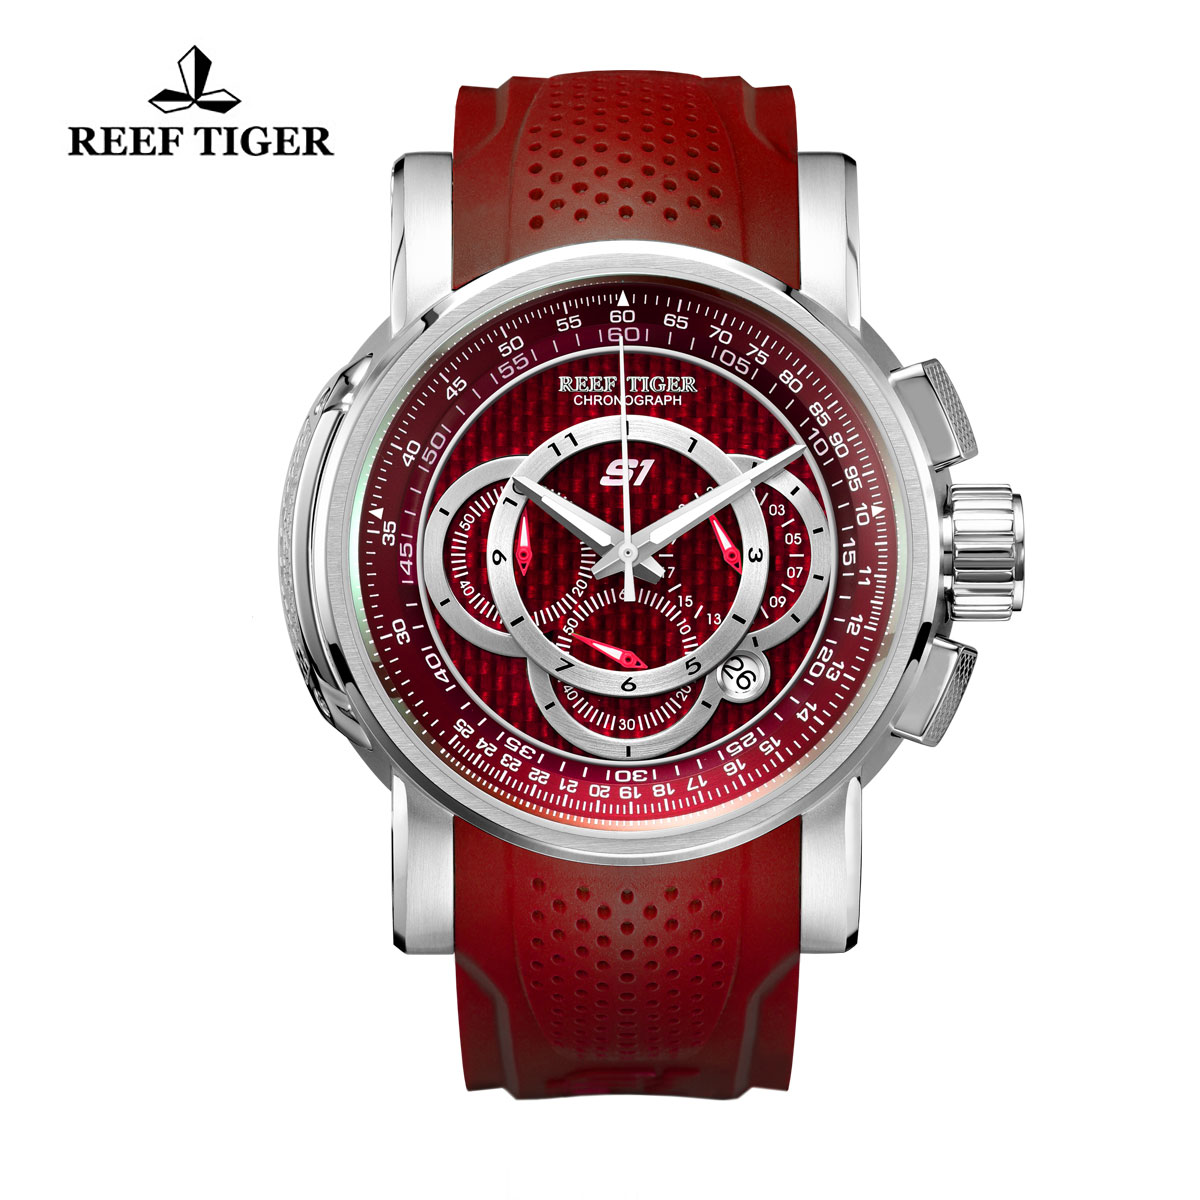 Reef Tiger Top Speed Sport Watches Chronograph Steel Case Red Dial Rubber Strap Watches RGA3063-YRR